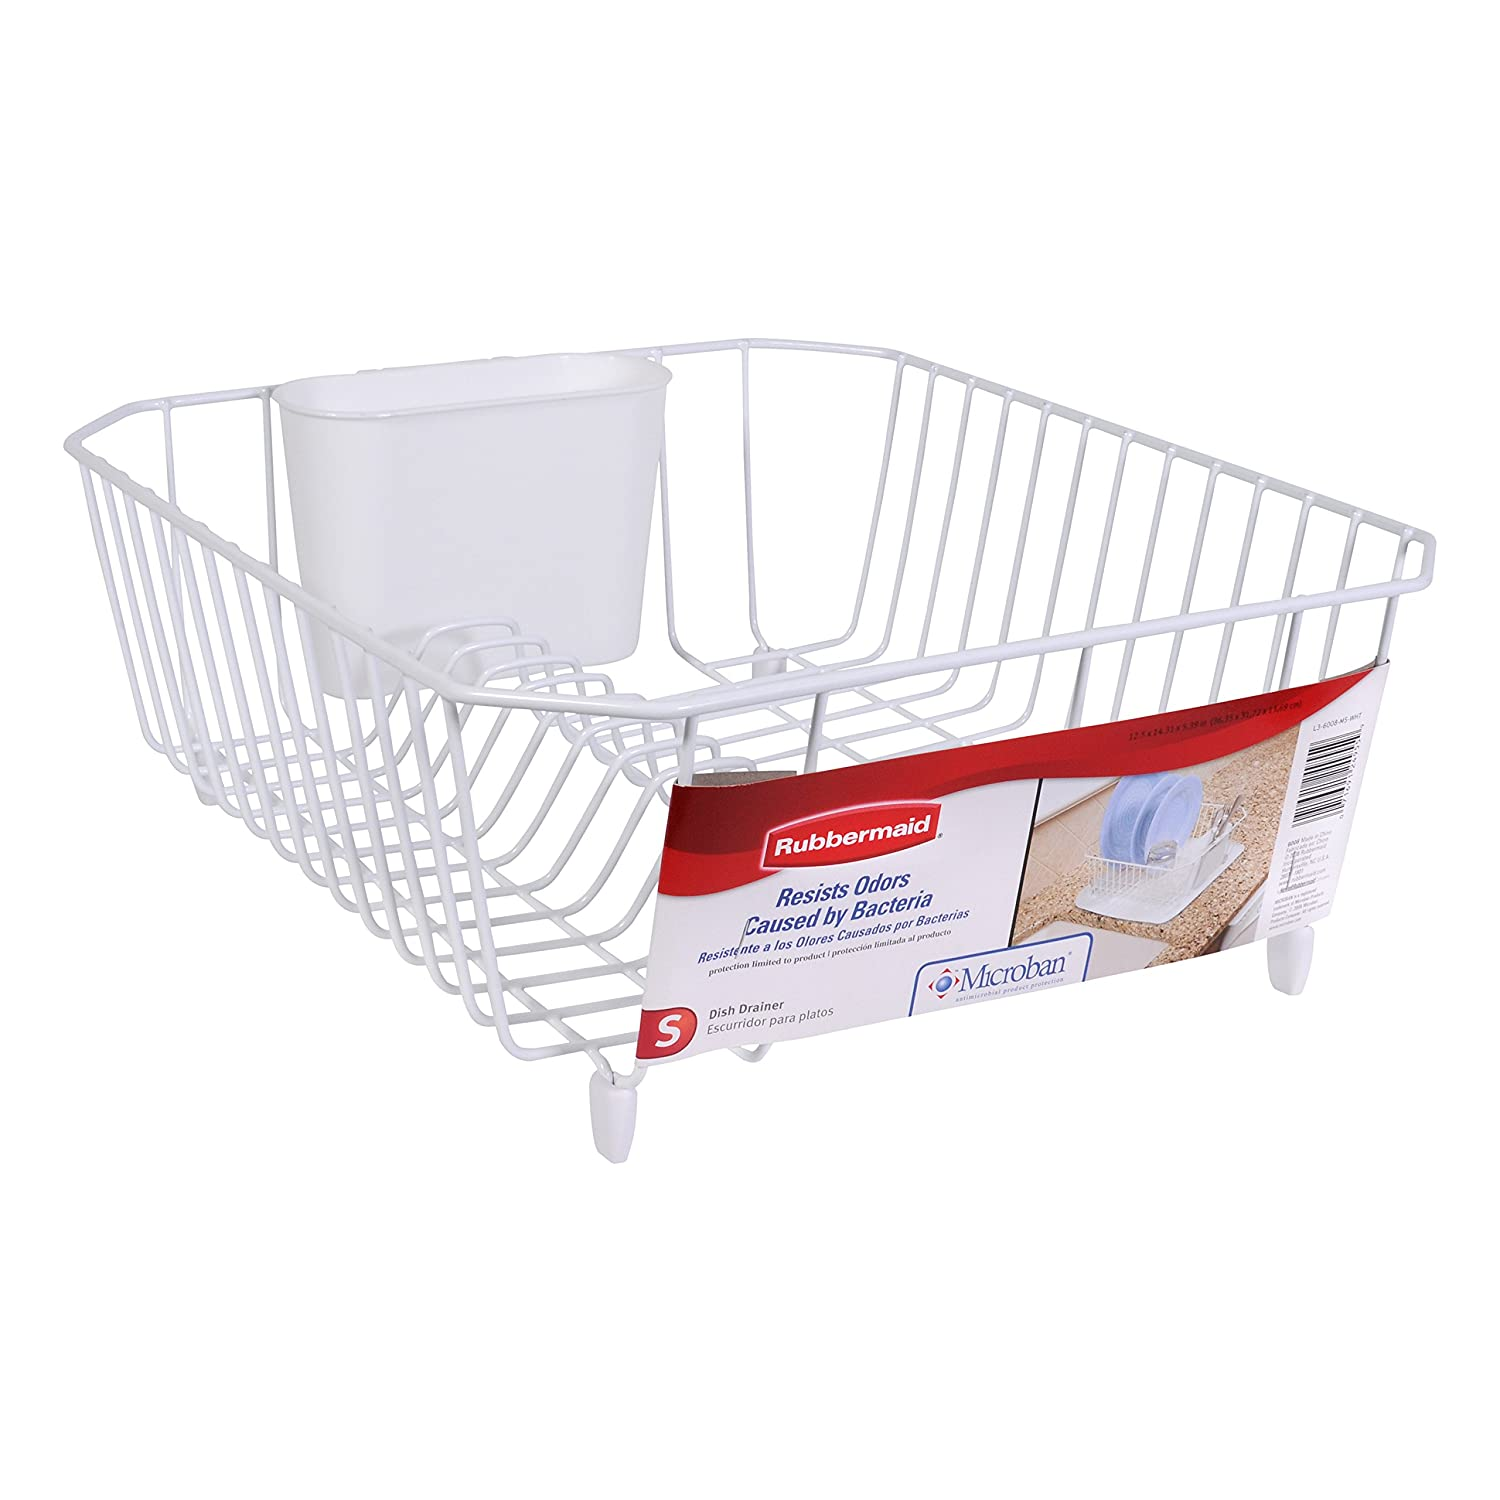 Amazon.com: Rubbermaid Antimicrobial Dish Drainer, Small, White: Dish Racks:  Kitchen U0026 Dining